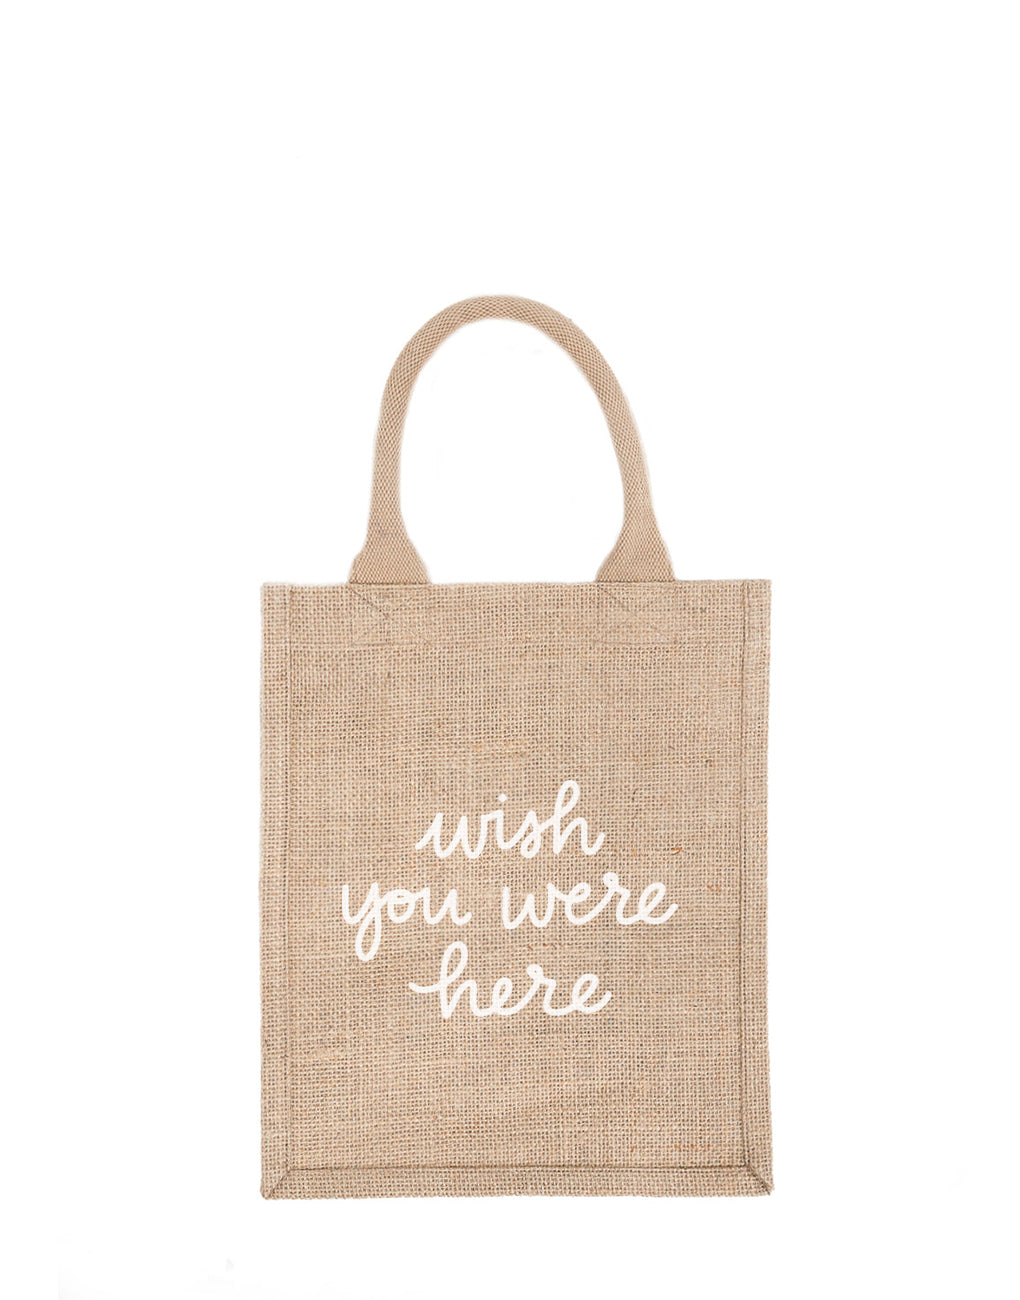 Medium Wish You Were Here Reusable Gift Tote In White Font | The Little Market